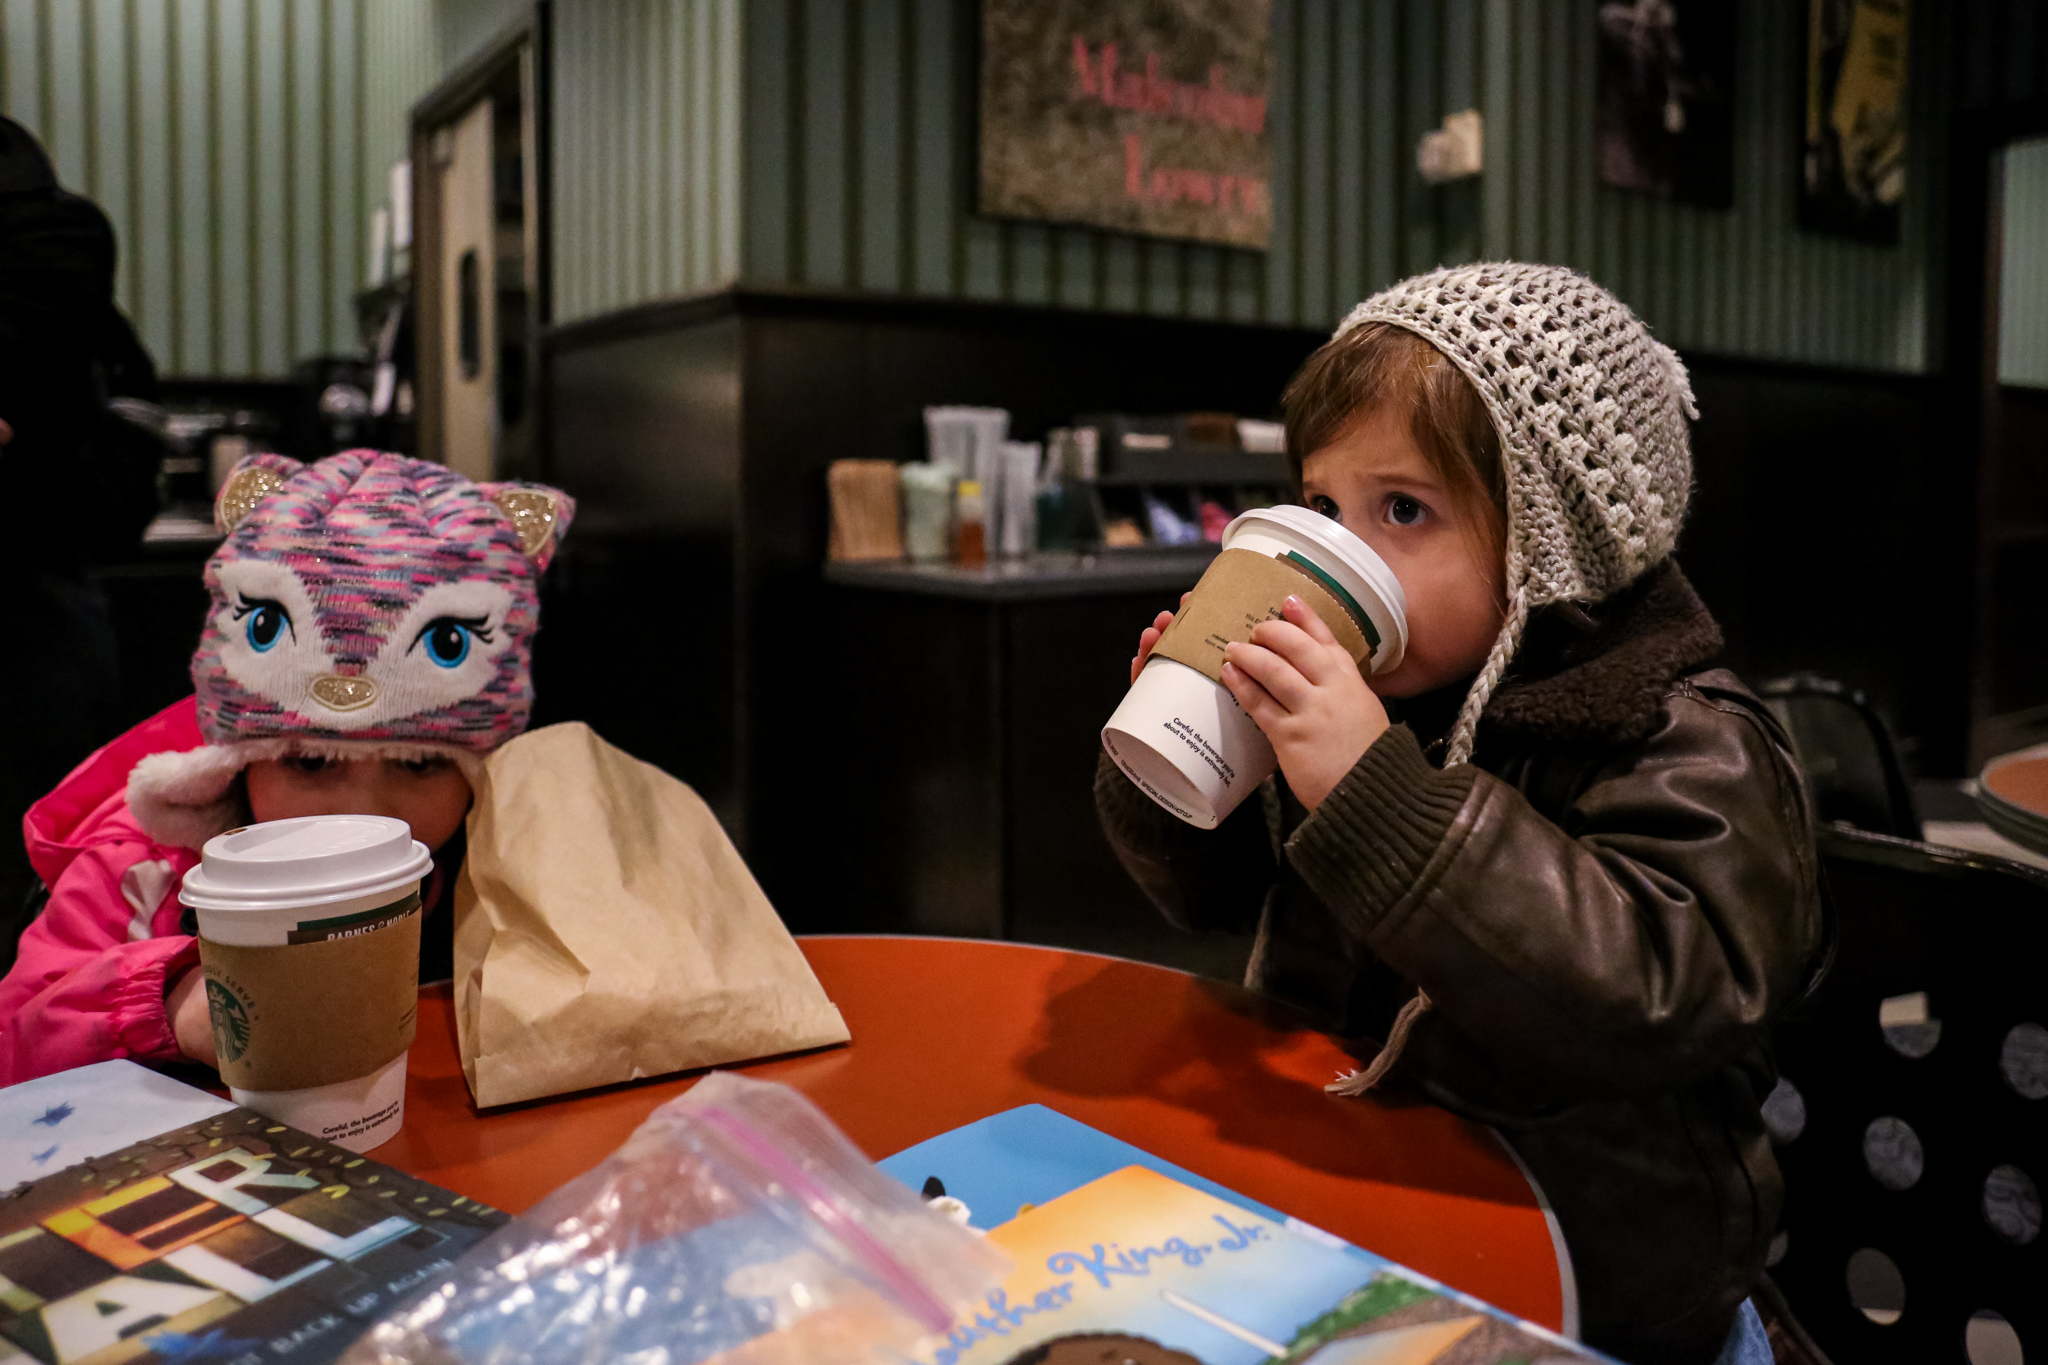 Little girl warming up with some hot chocolate at Starbucks during her day in the life family photography session to celebrate her third birthday.